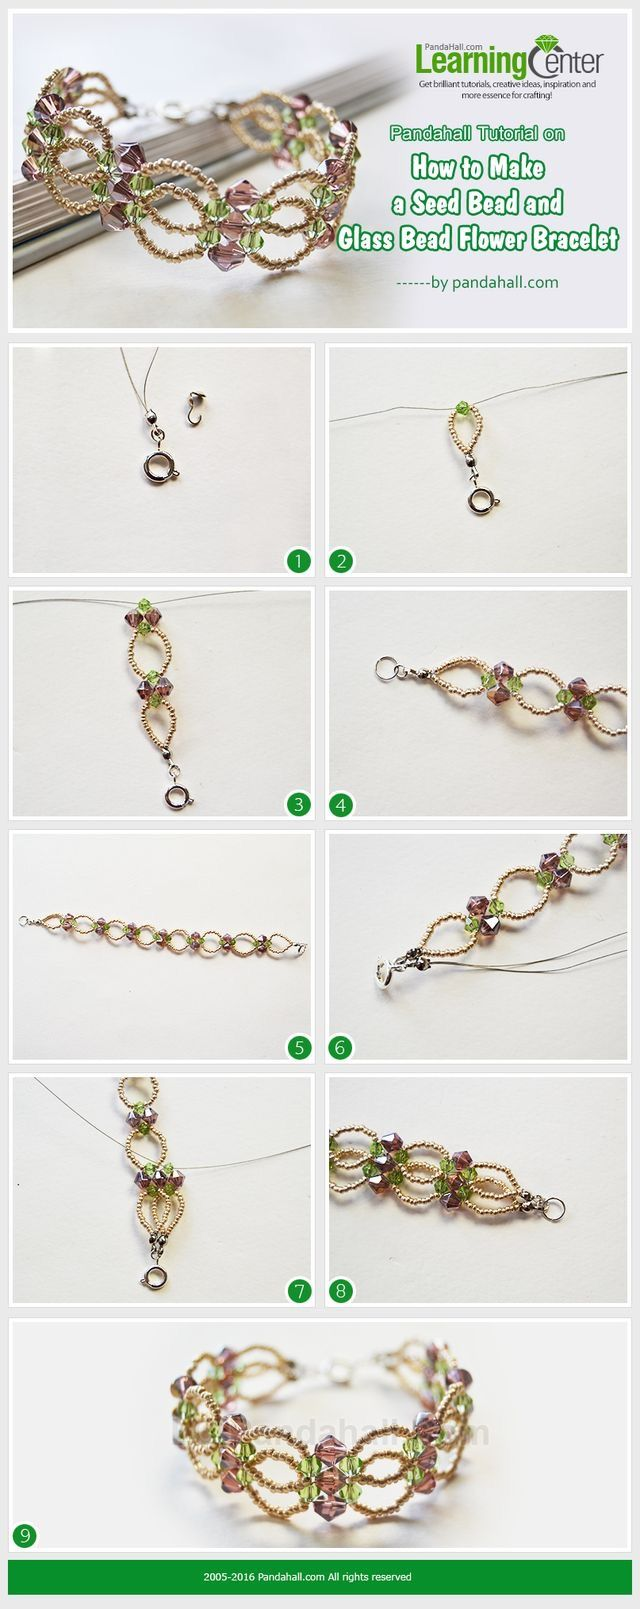 2508 Best Handmade Images On Pinterest Carpentry Carved Wood And Earrings Recycled Circuit Board Copper Red Glass Beads Geekery This Pandahall Tutorial Will Show You How To Make A Seed Bead Flower Bracelet Hope Like It Enjoy The Diy Process